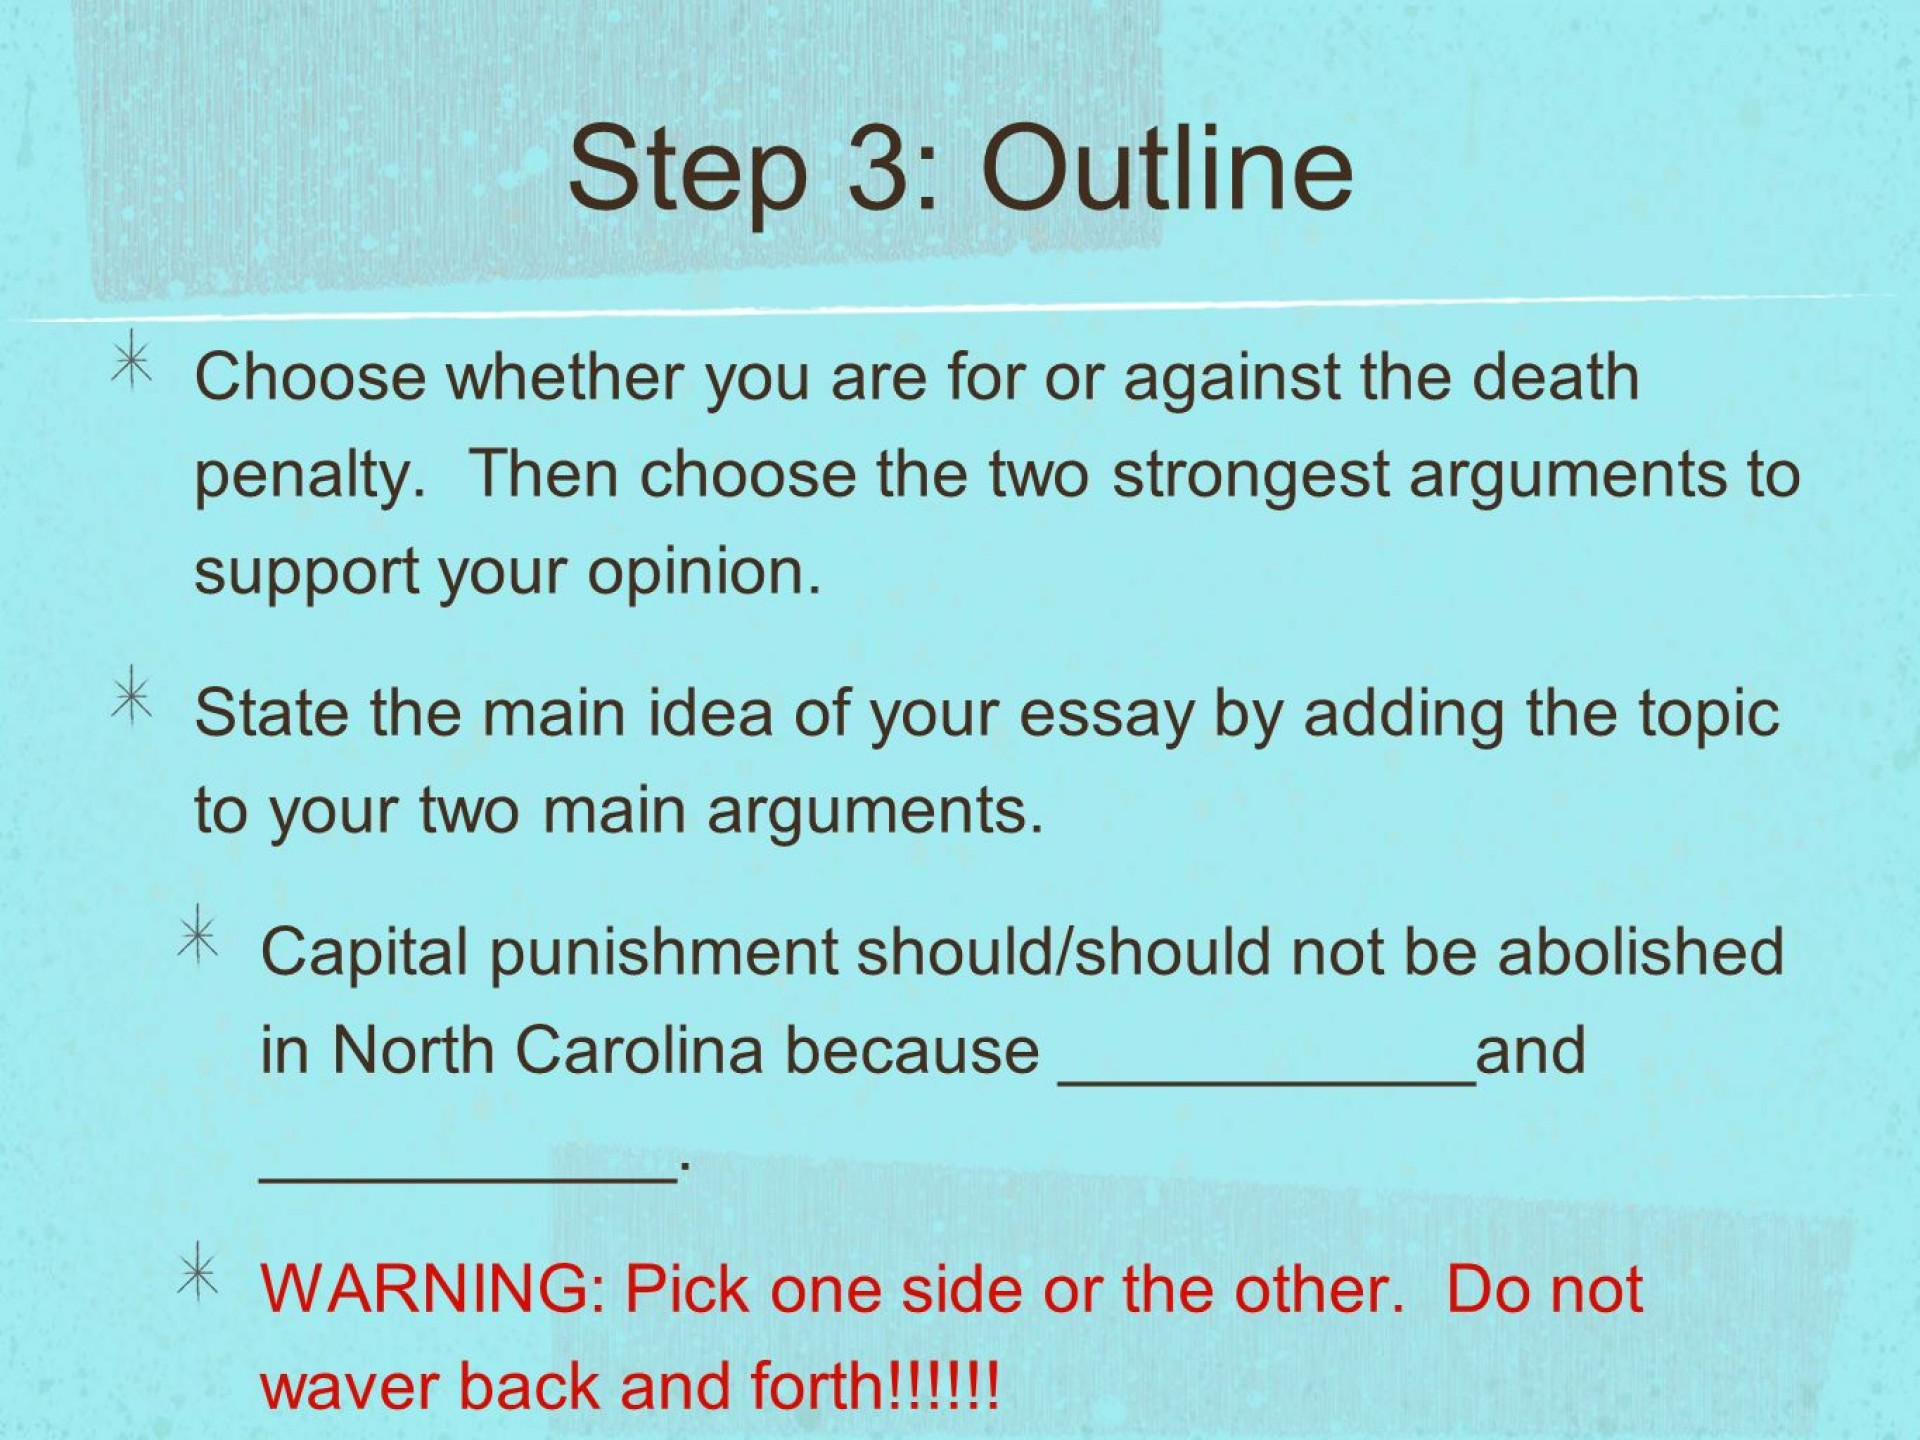 021 Arguments For Death Penalty Essay Against Kill The Persuasive On Con Sl Why Should Abolished Paragraph In Philippines About Anti Pro Breathtaking Advantages And Disadvantages Of Cons 1920